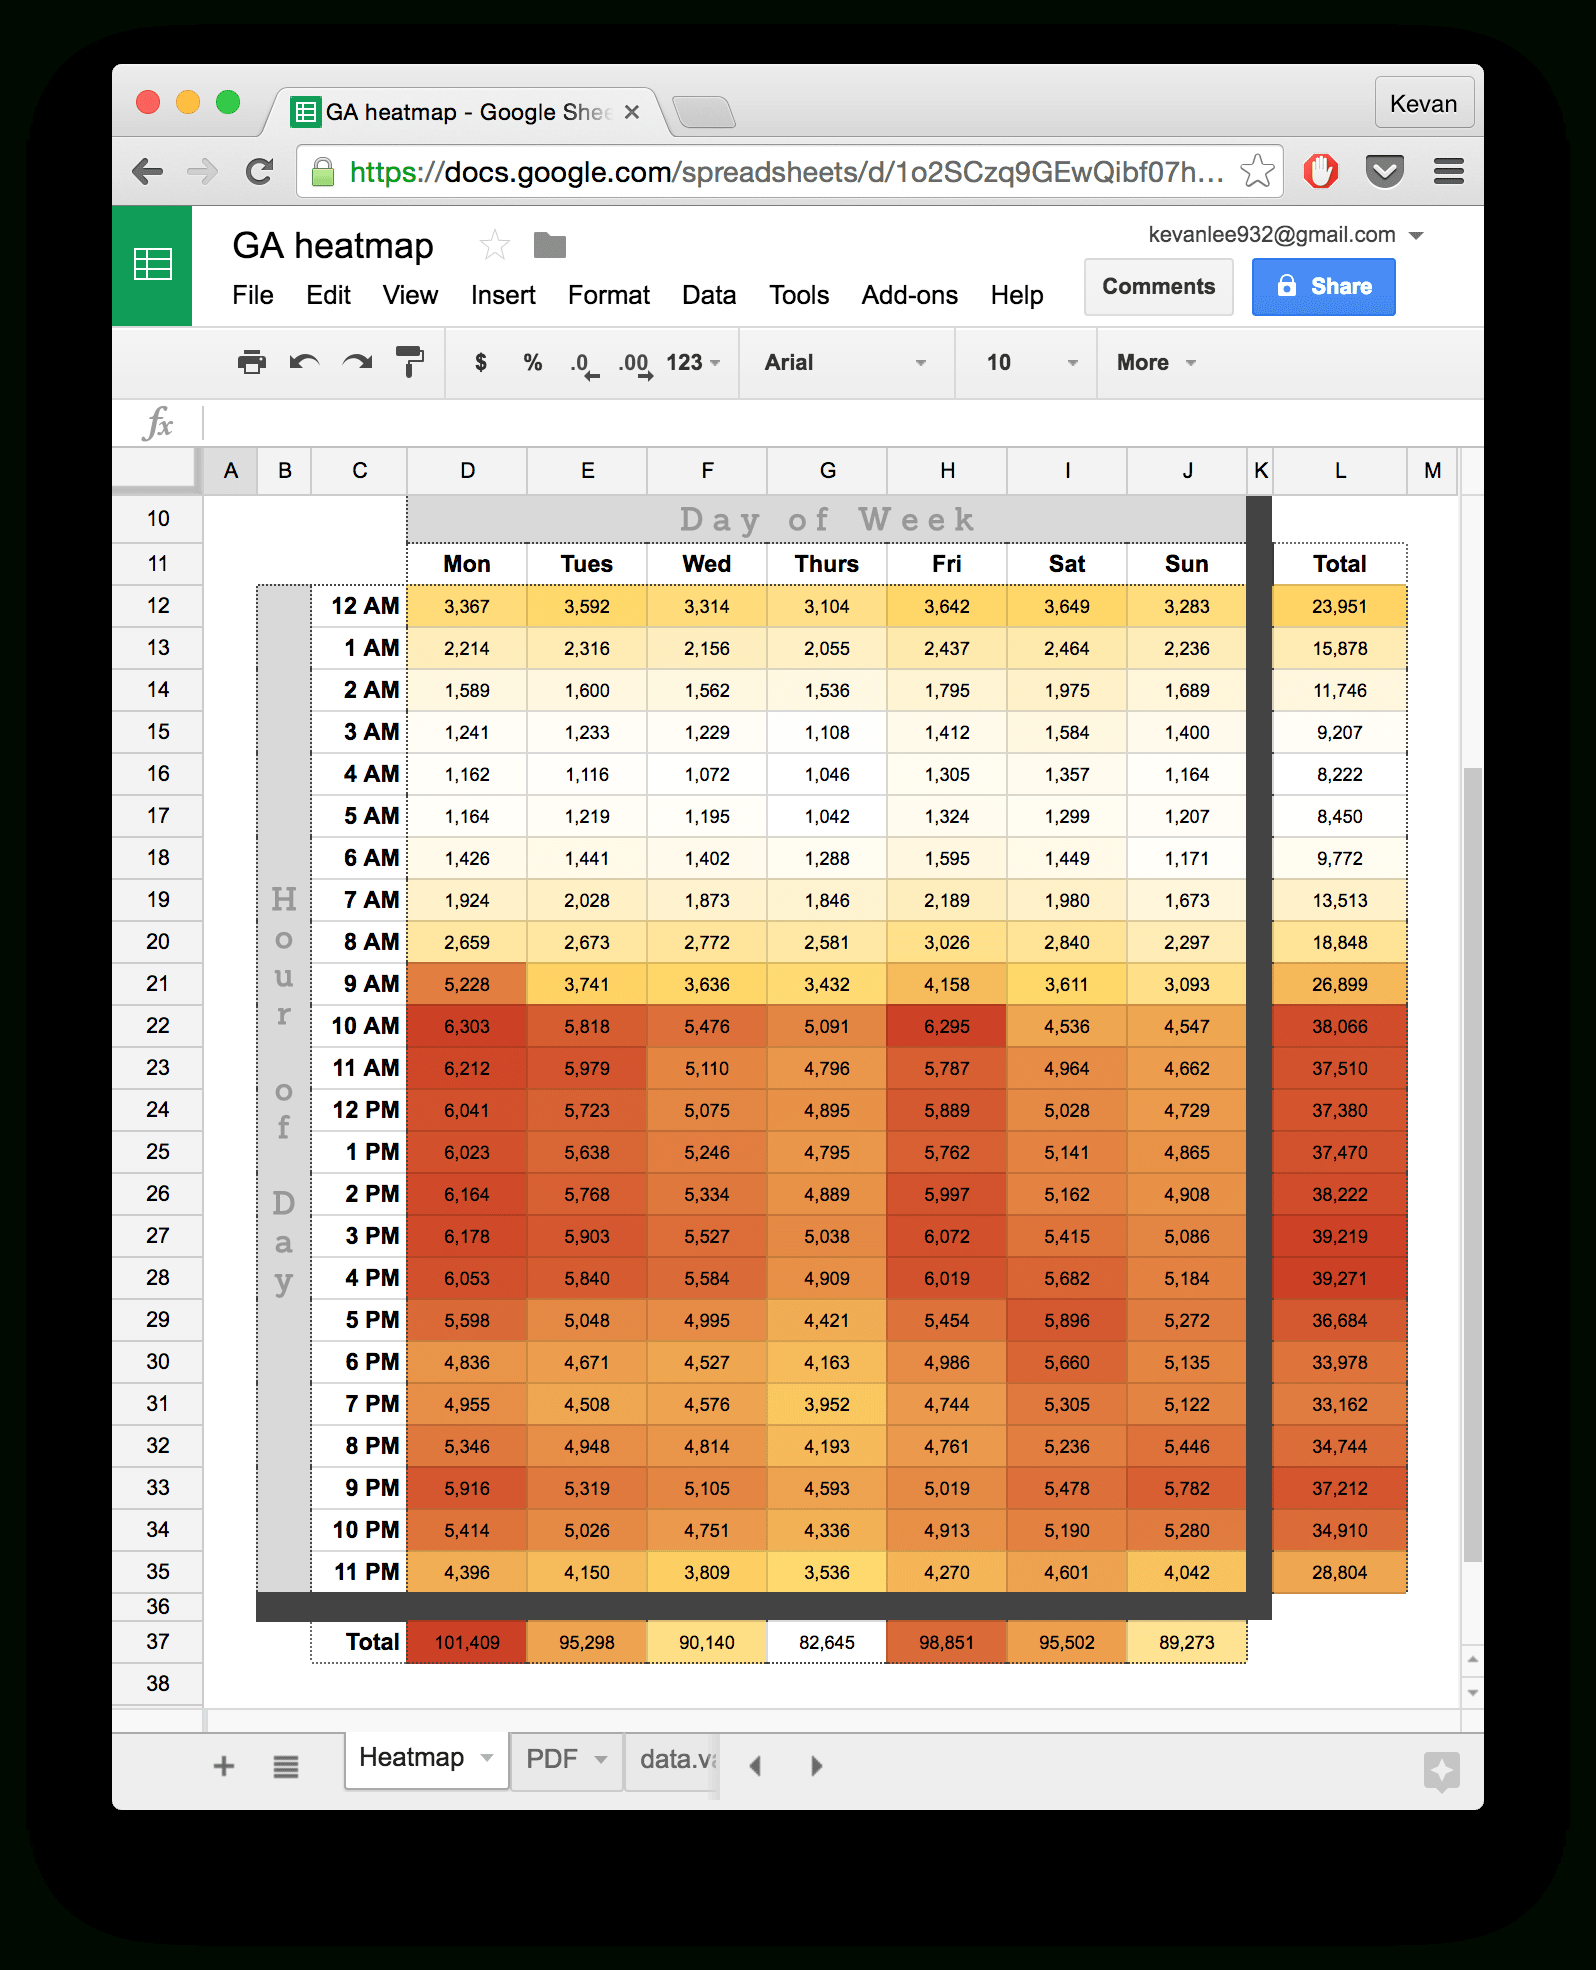 Shares Record Keeping Spreadsheet With Regard To 10 Readytogo Marketing Spreadsheets To Boost Your Productivity Today